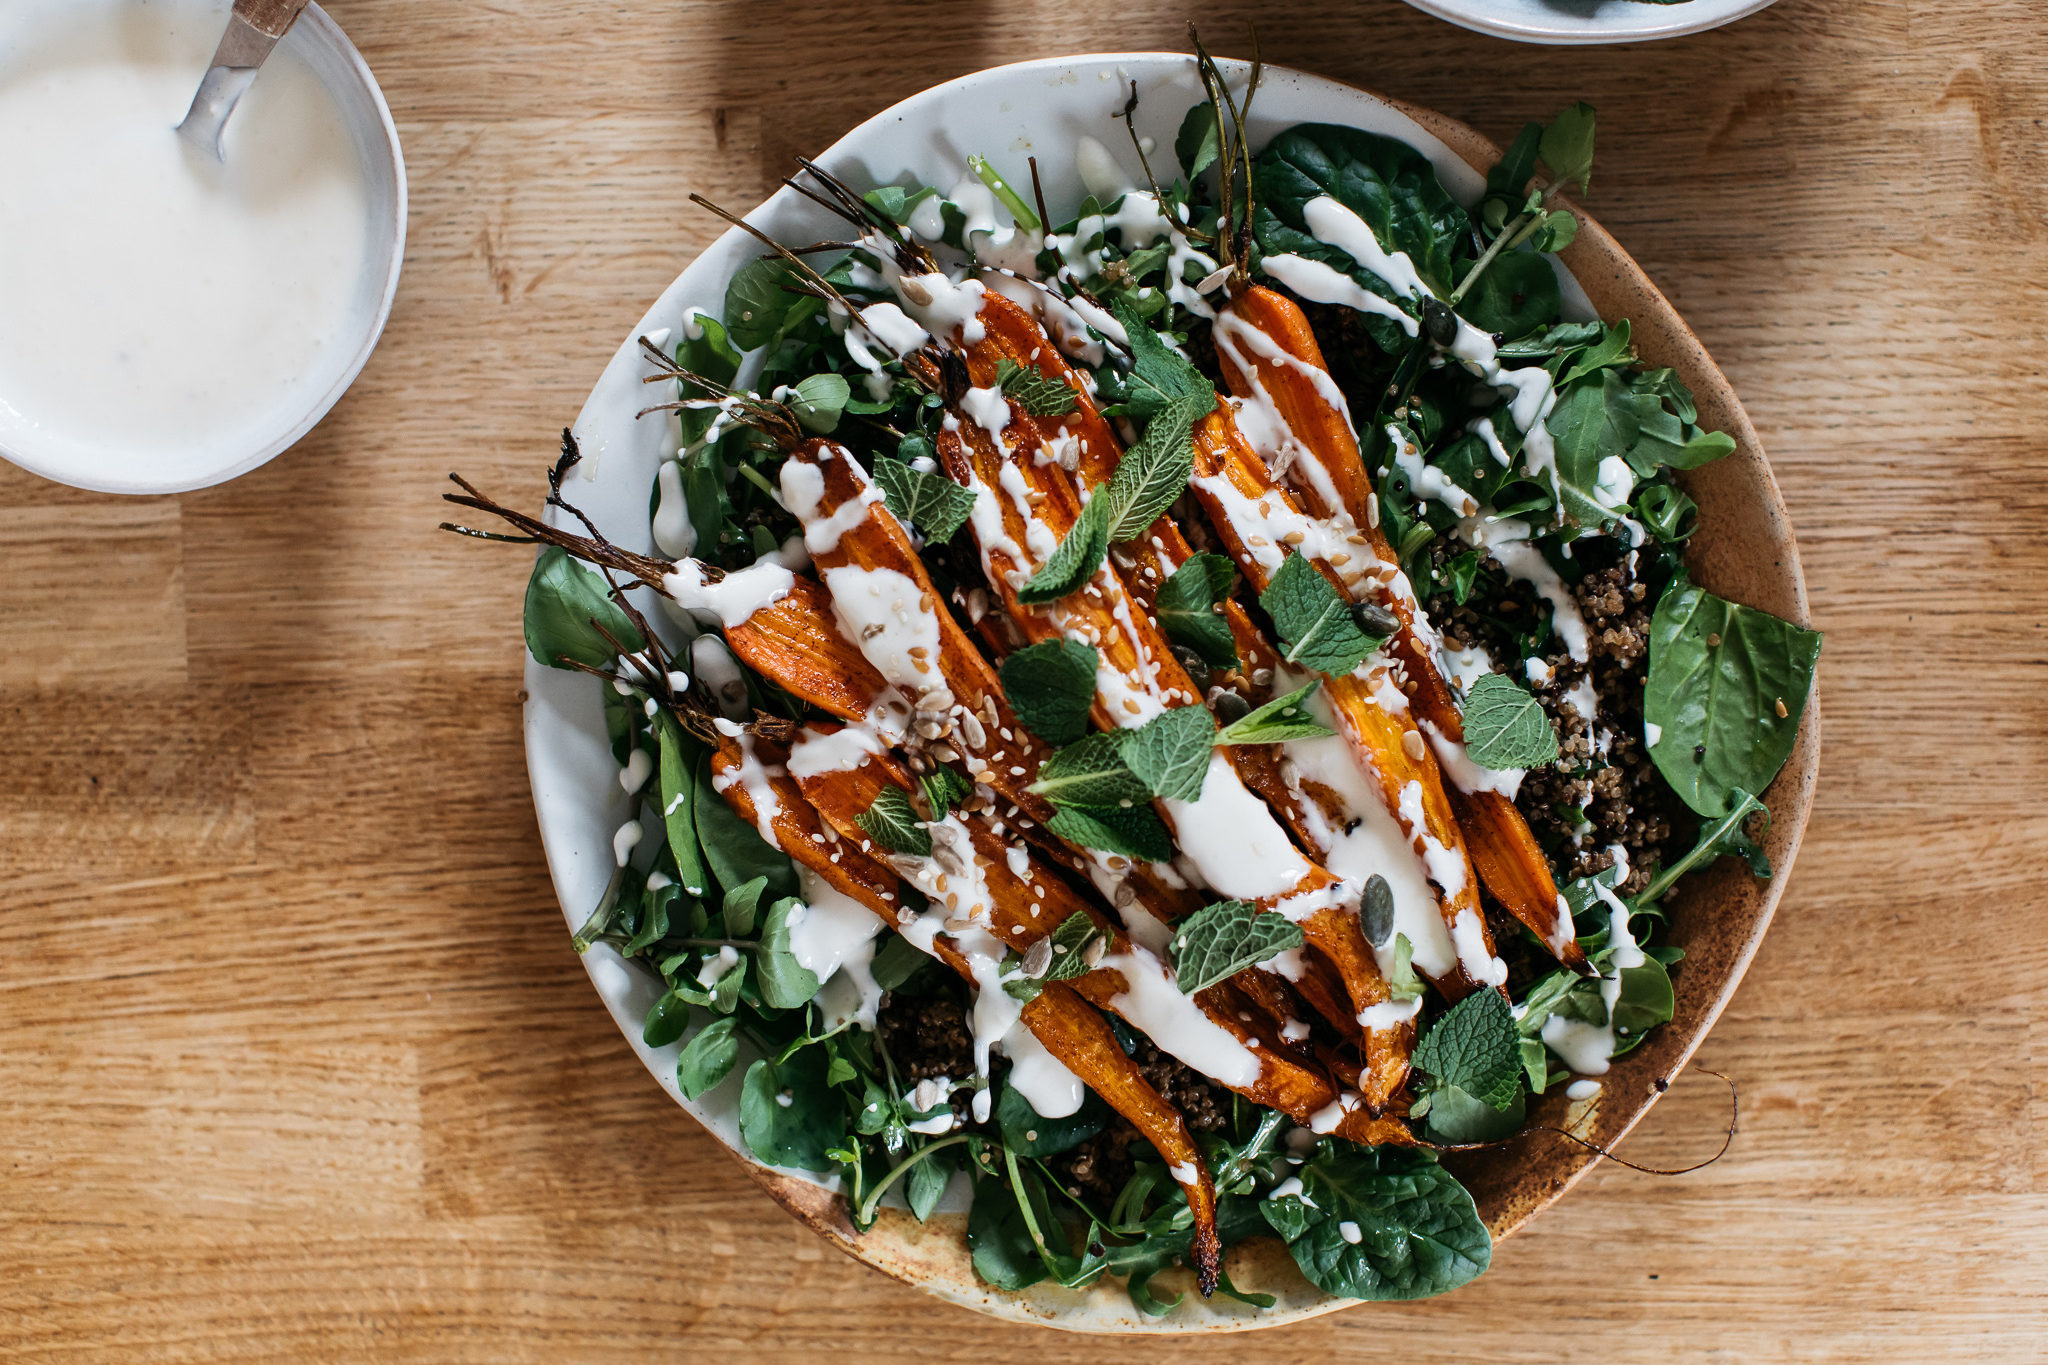 FODMAP friendly roasted carrot salad with quinoa and yogurt dressing